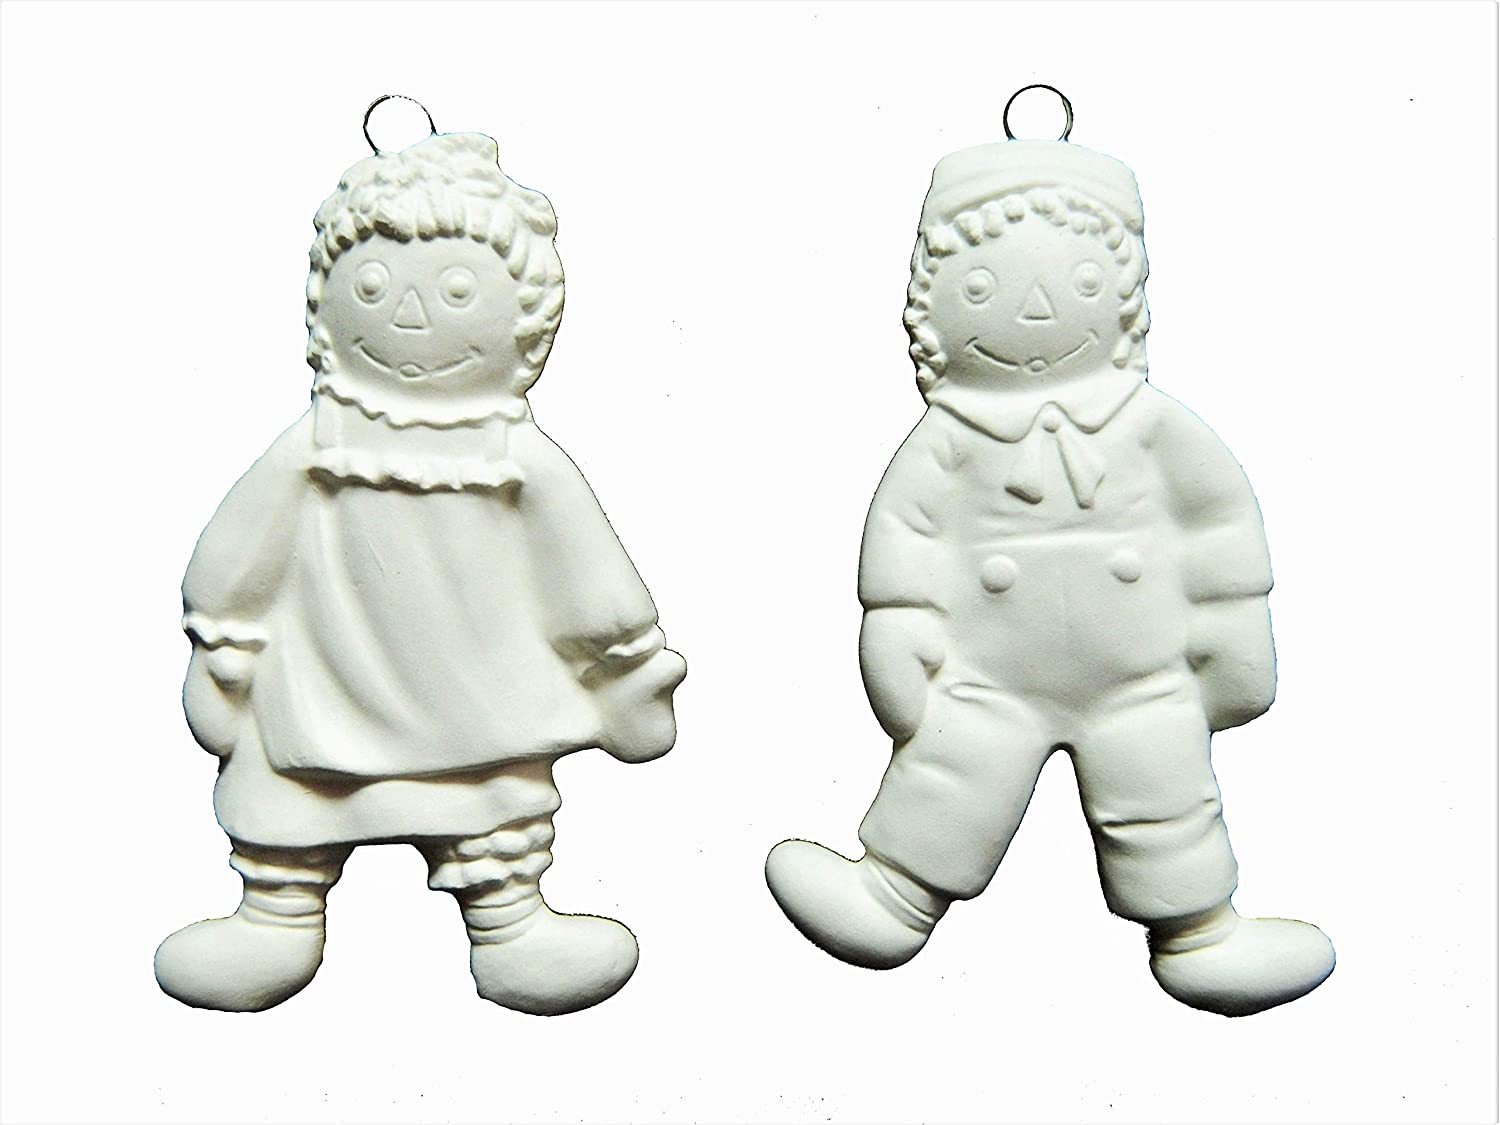 Amazon.com: Vintage Raggedy Ann & Andy Christmas Ornament - Ready to Paint Ceramic  Bisque - Hand Poured in The USA: Health & Personal Care